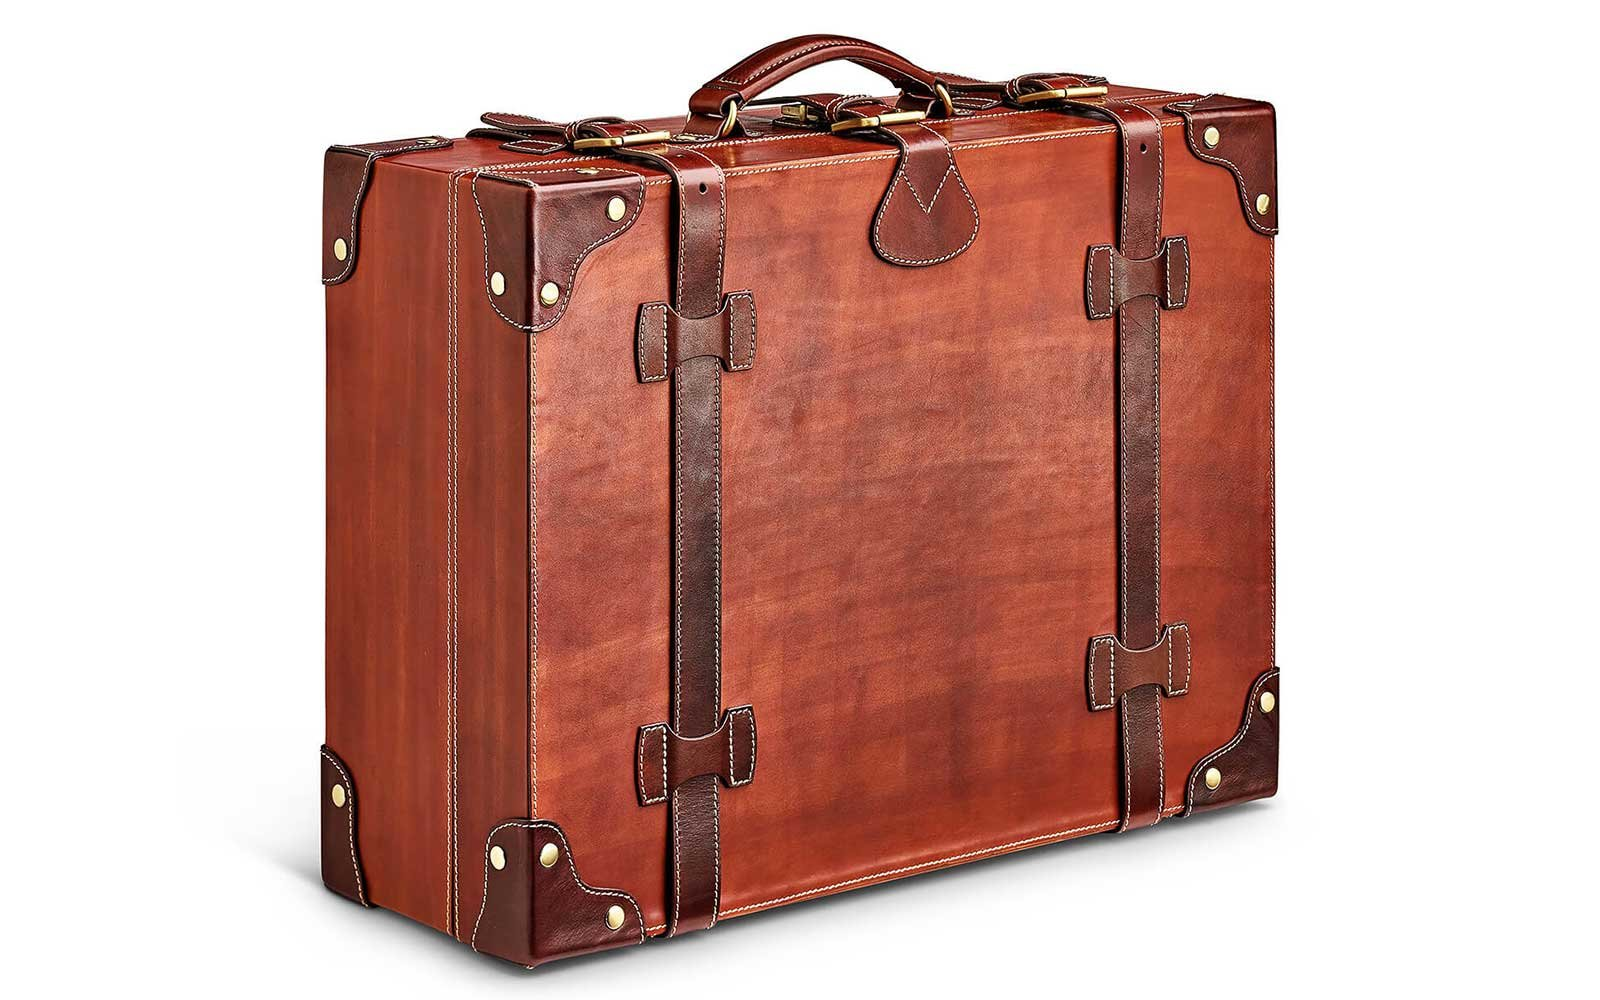 Moral Code leather suitcase